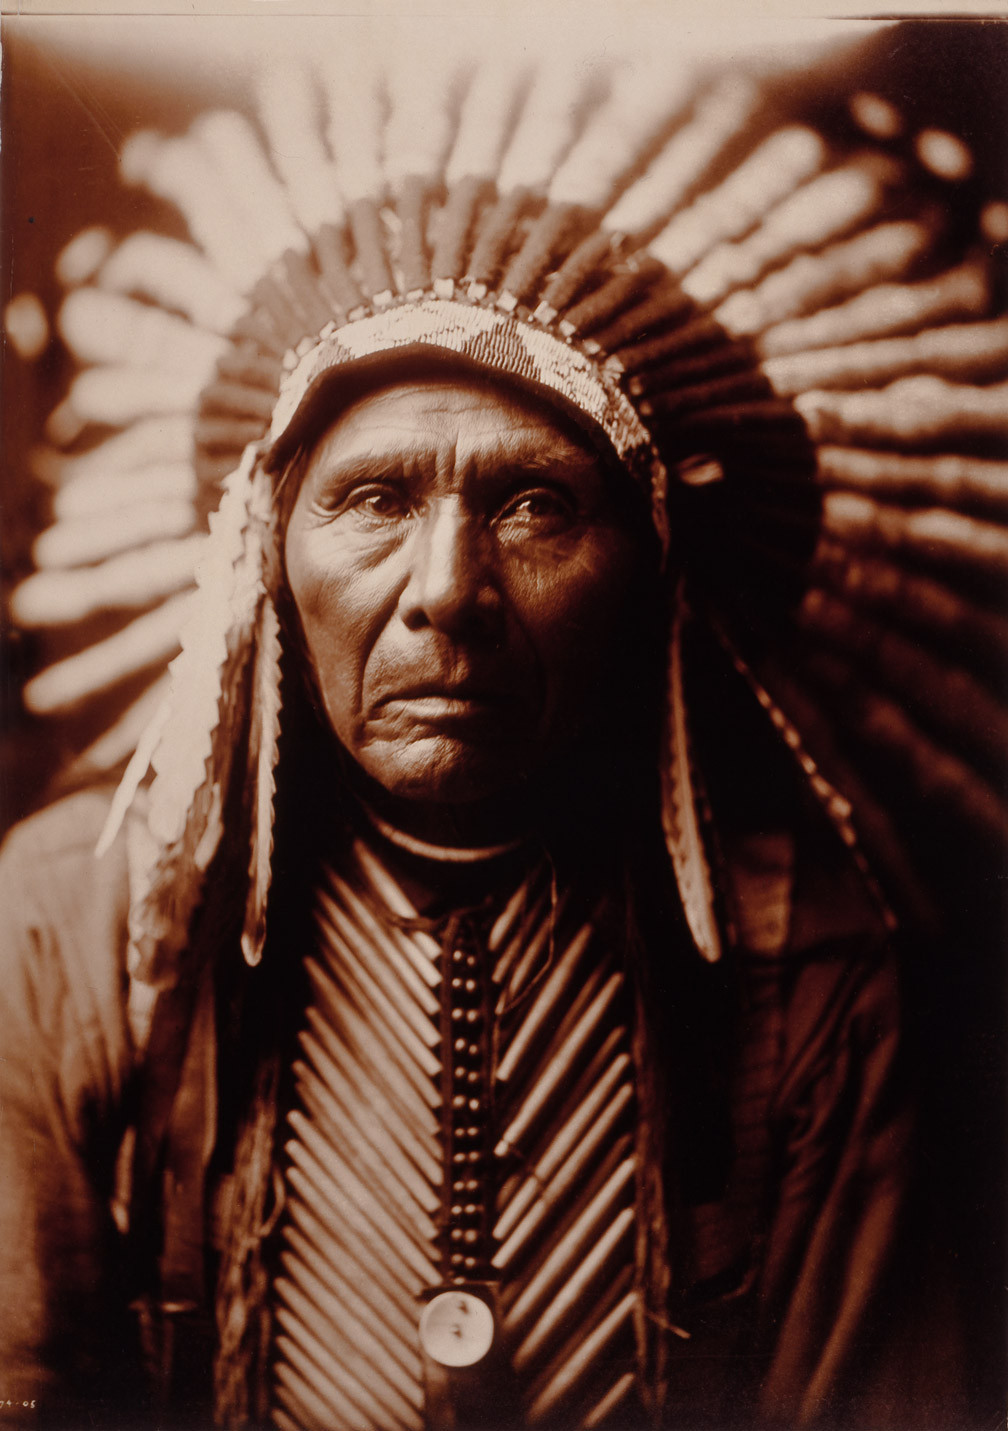 three-horses-native-american-by-edward-curtis_52412035-ed5e-4c5c-be9b-decdf21e97de.jpeg